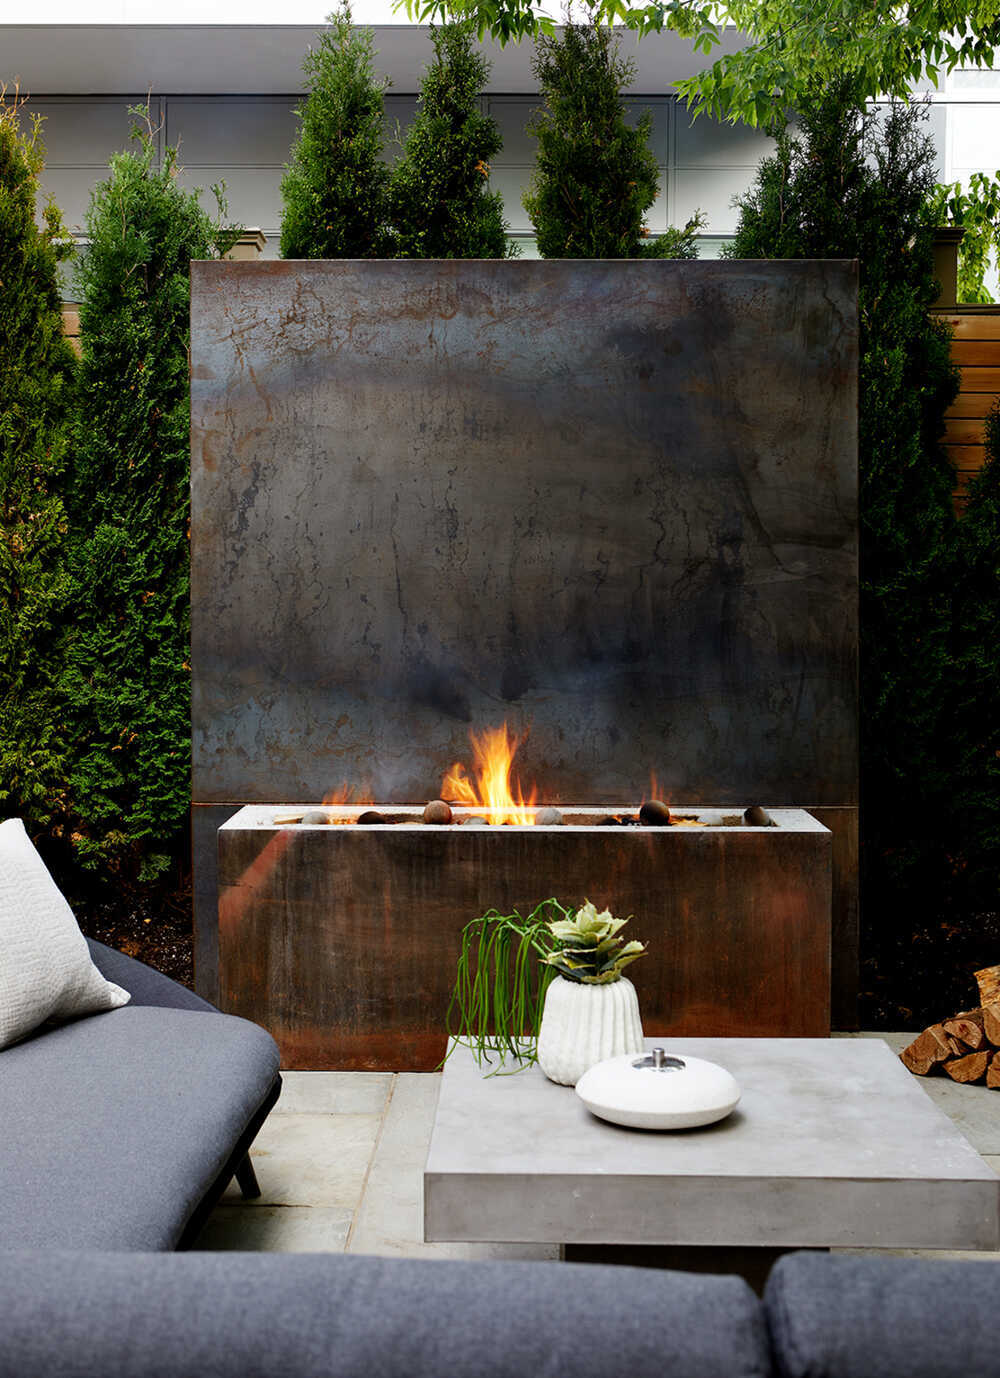 fireplace, terrace, outdoor living, Ancerl Studio